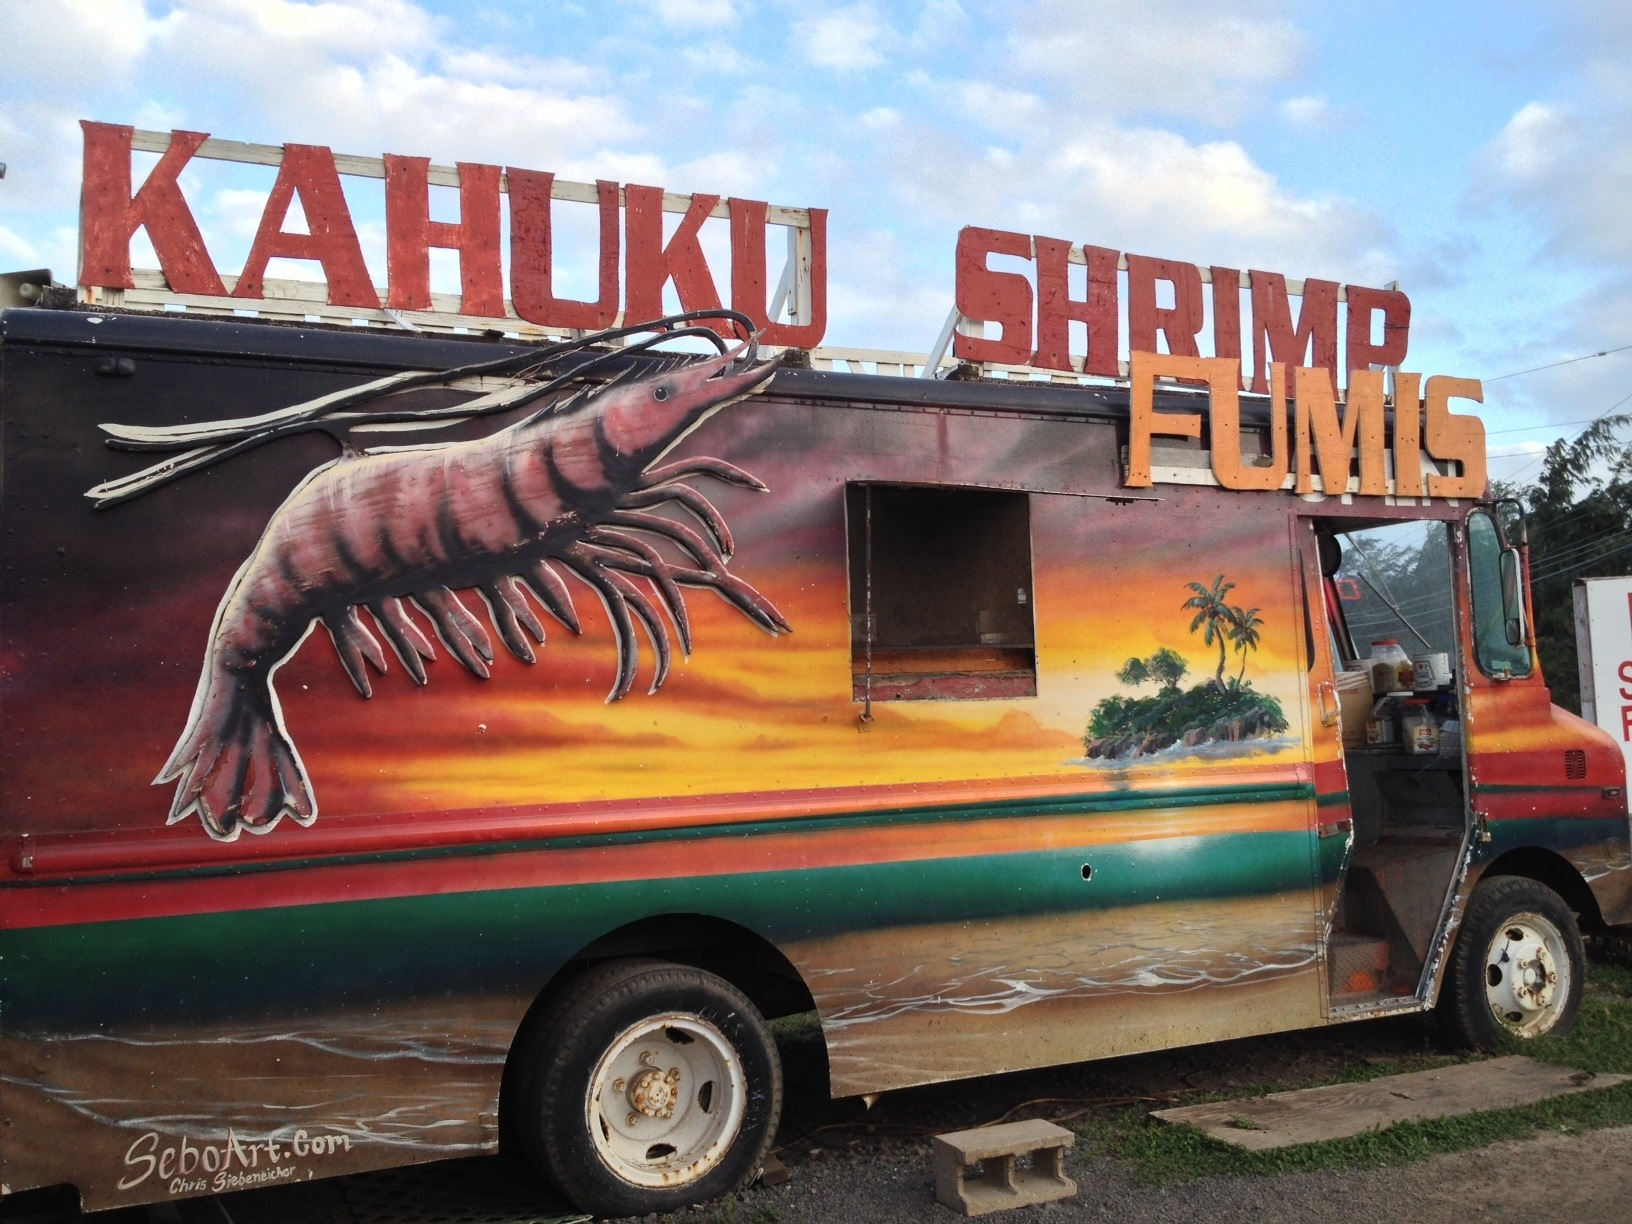 This was like the fifth shrimp truck